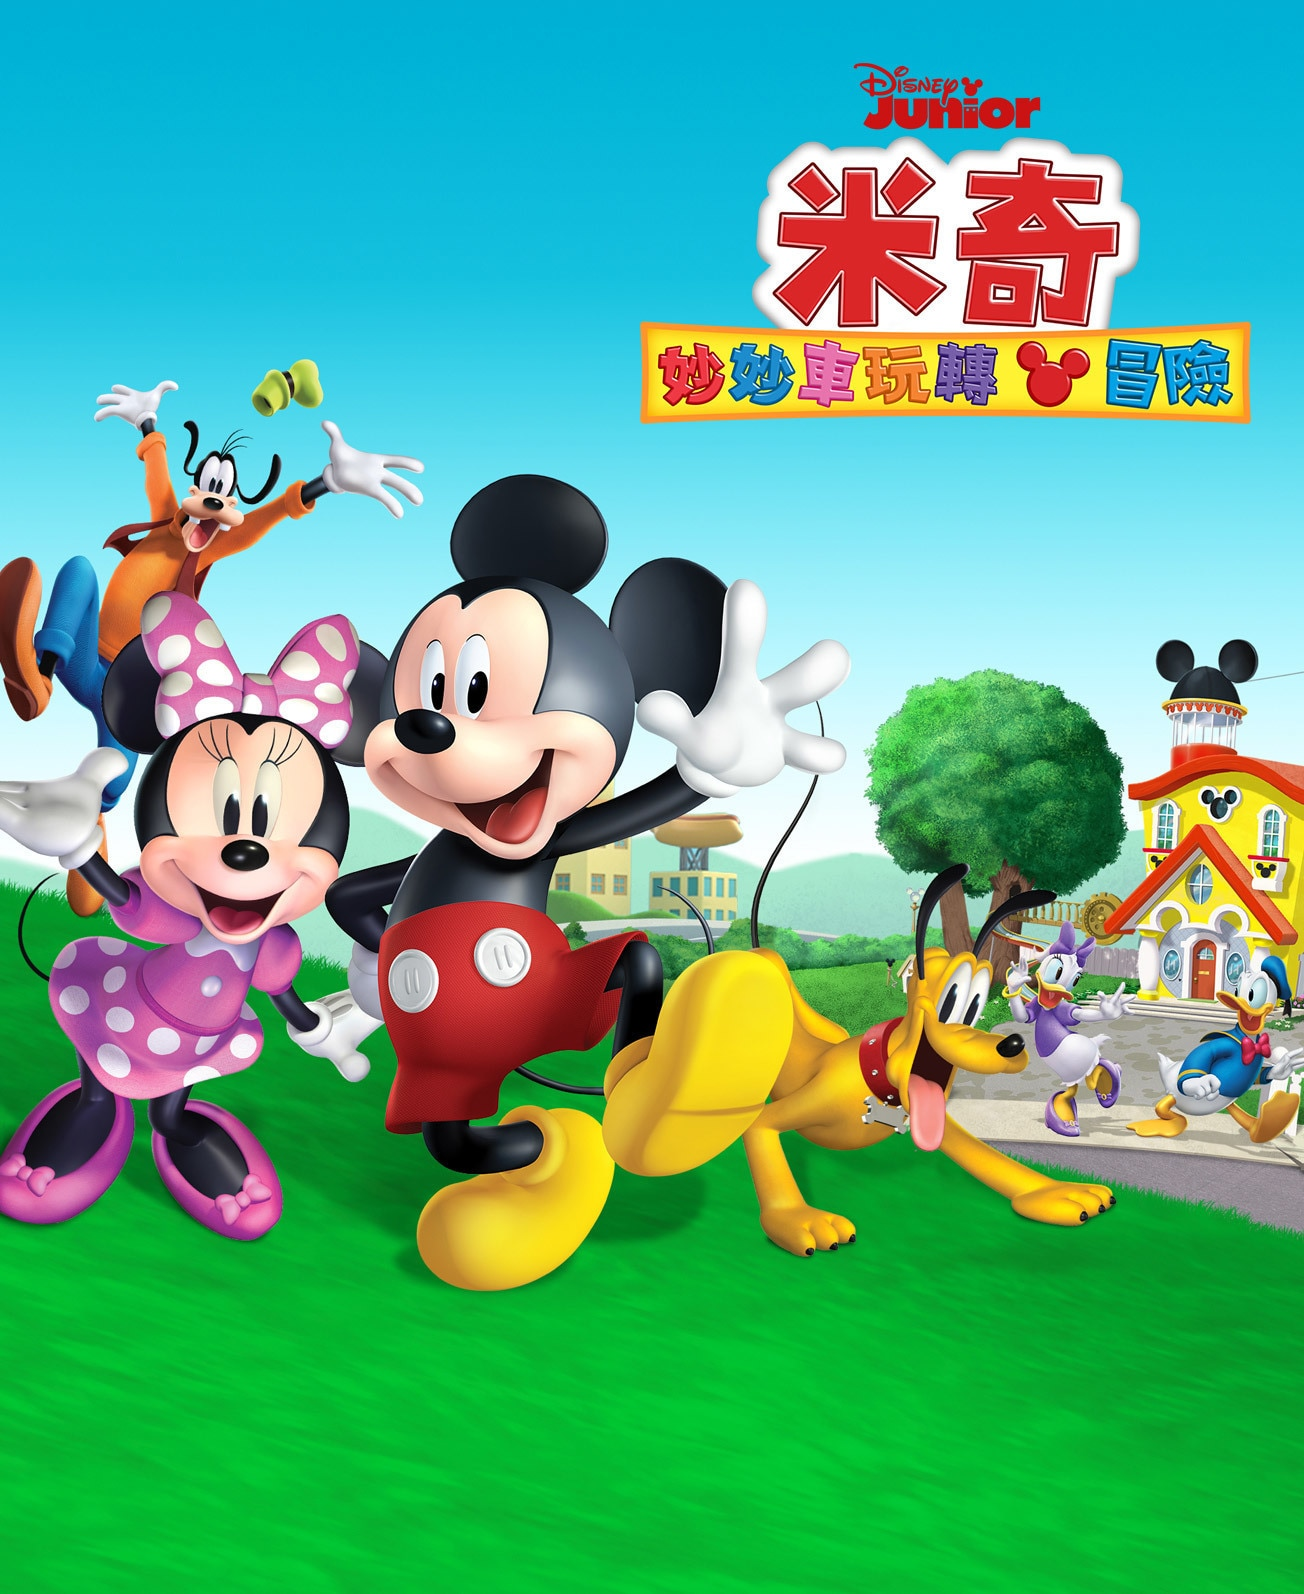 Disney Junior | Mickey mouse mixed up adventure